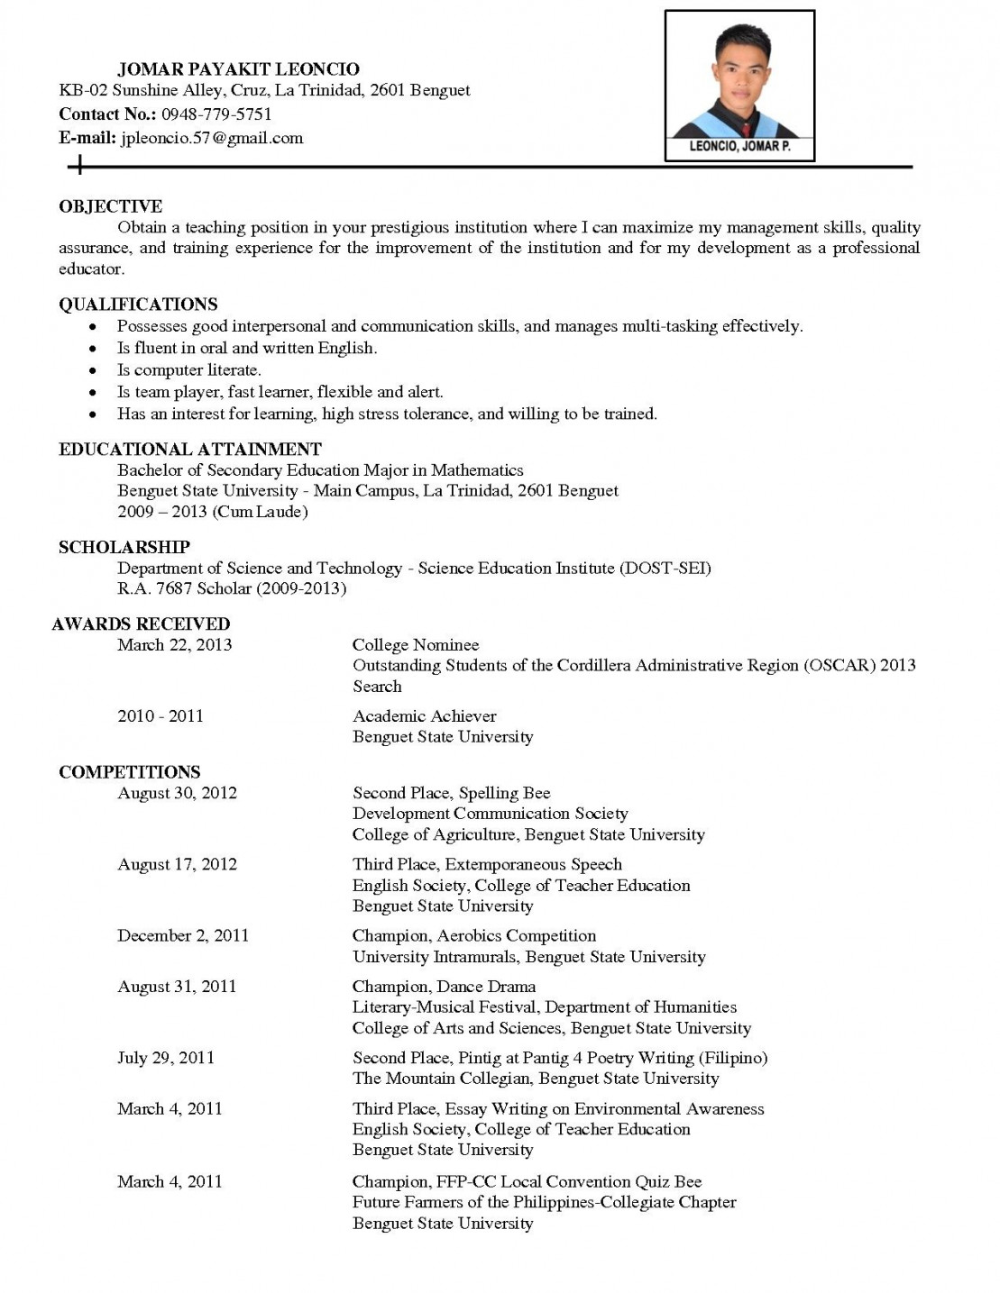 Comprehensive Resume Sample Format Resume examples, Job